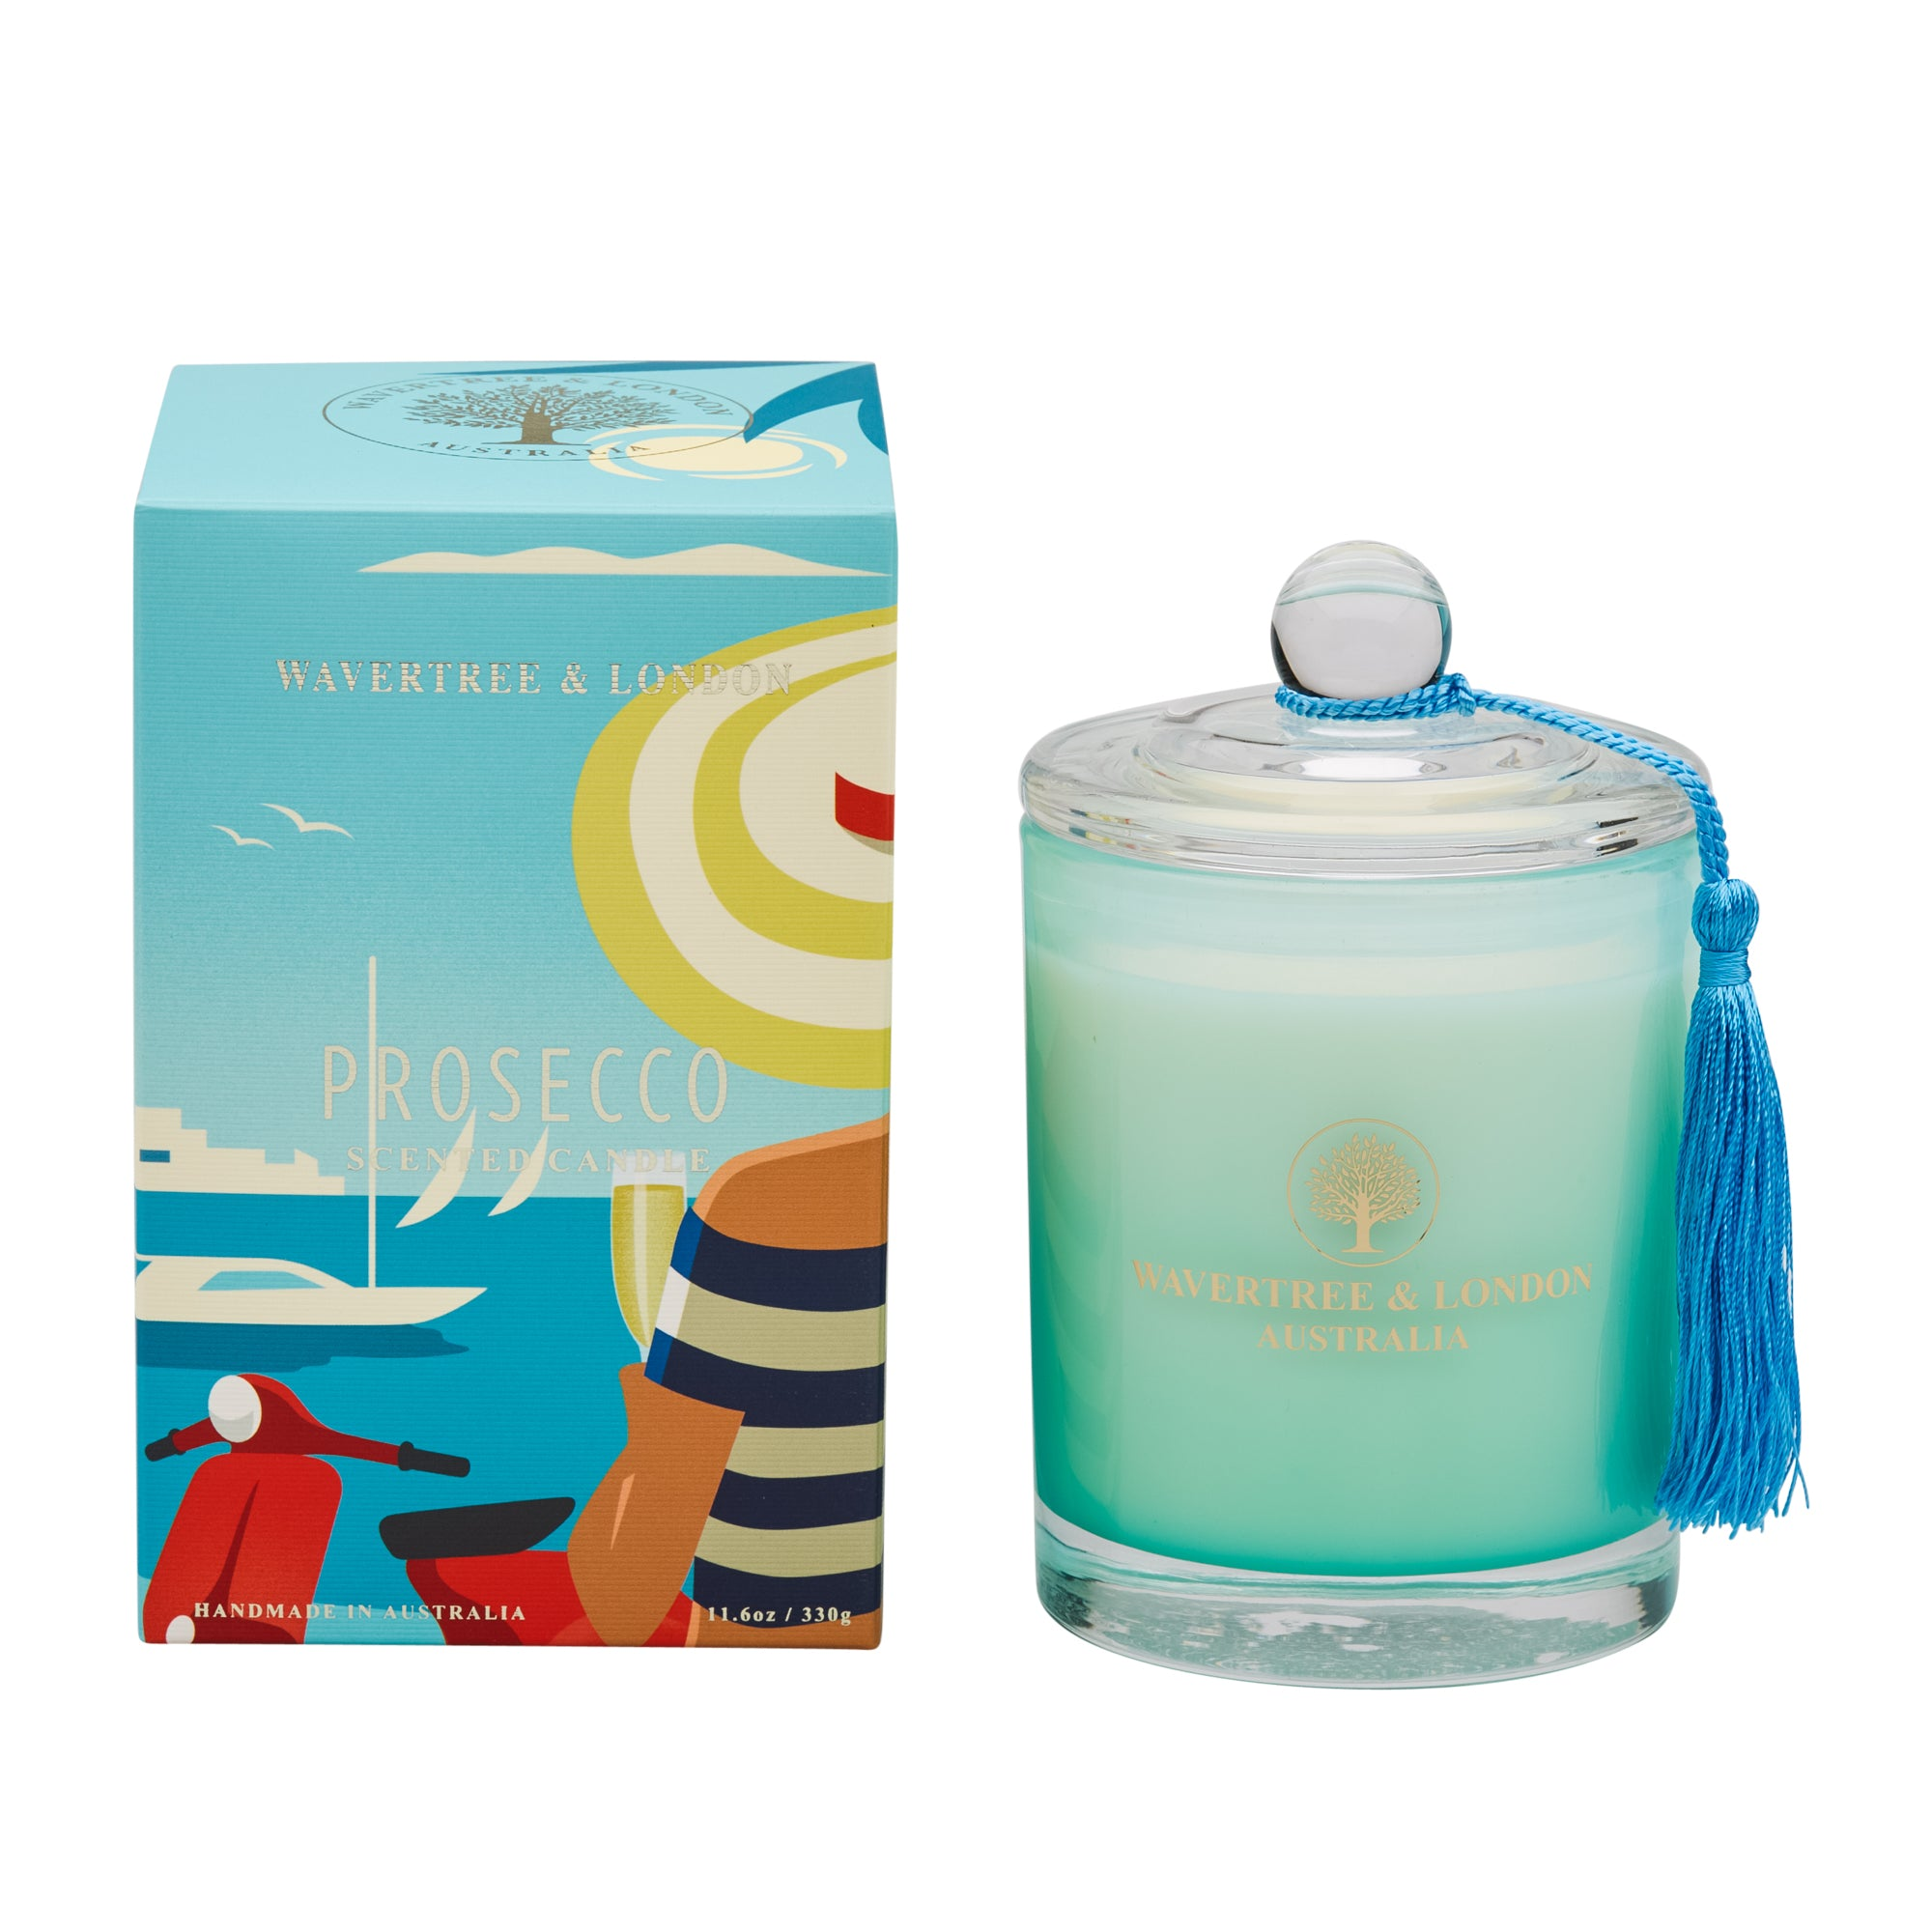 Wavertree & London Soy candle  - Prosecco